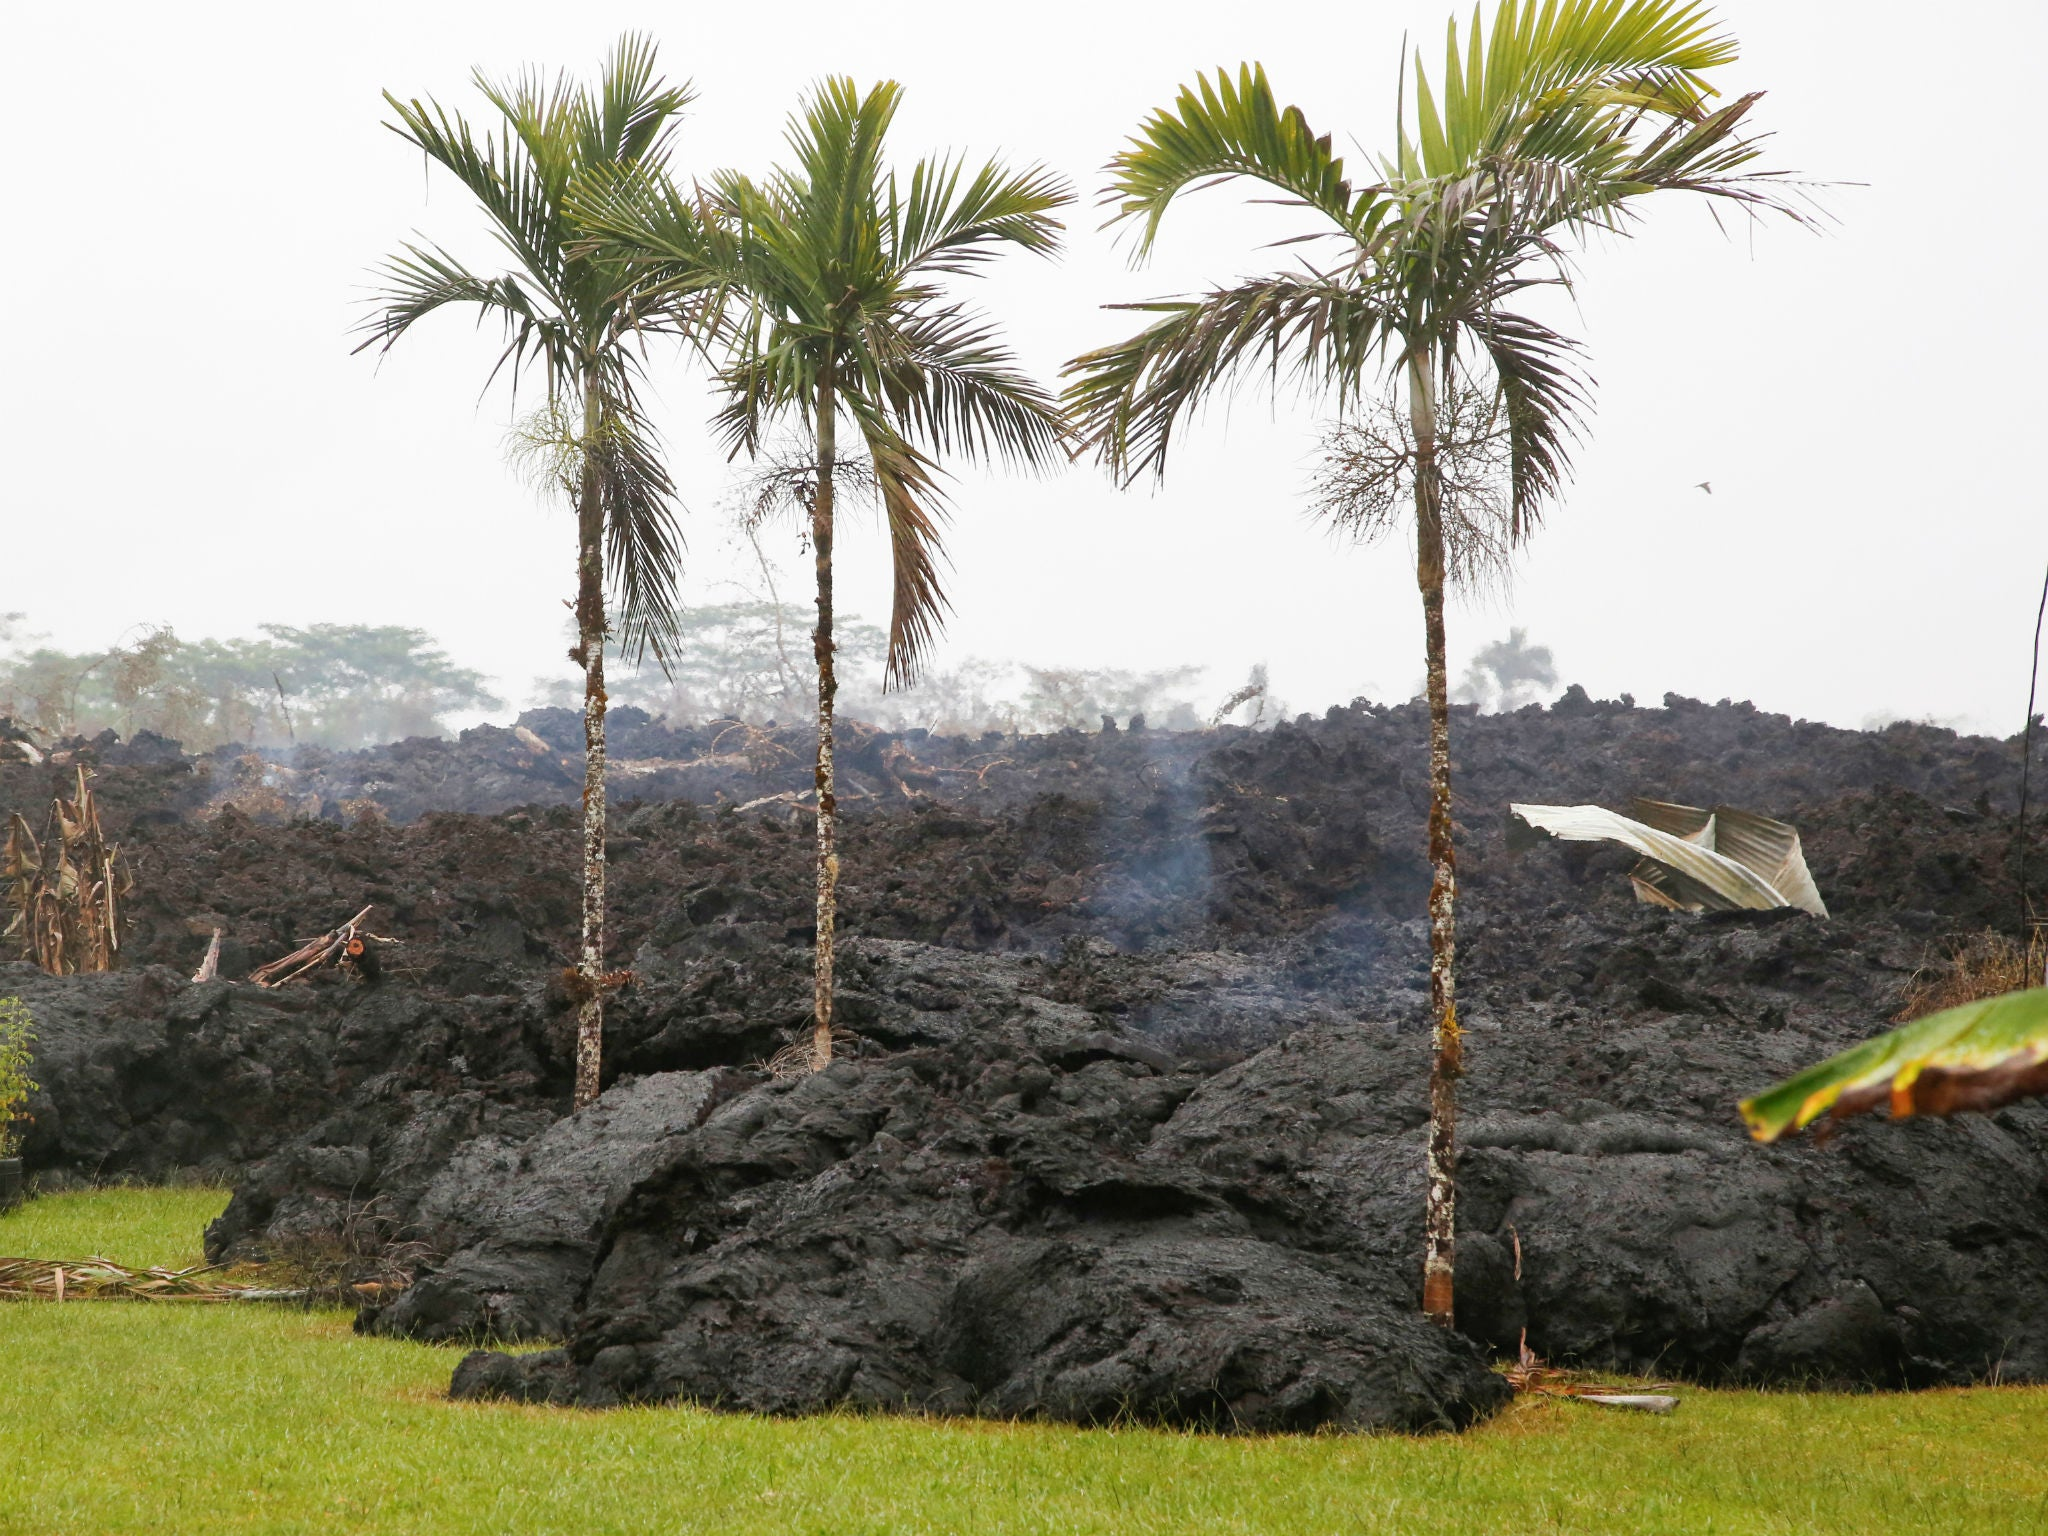 Hawaii volcano: Kilauea could explosively erupt sending rocks and ash for miles, says US Geological Survey